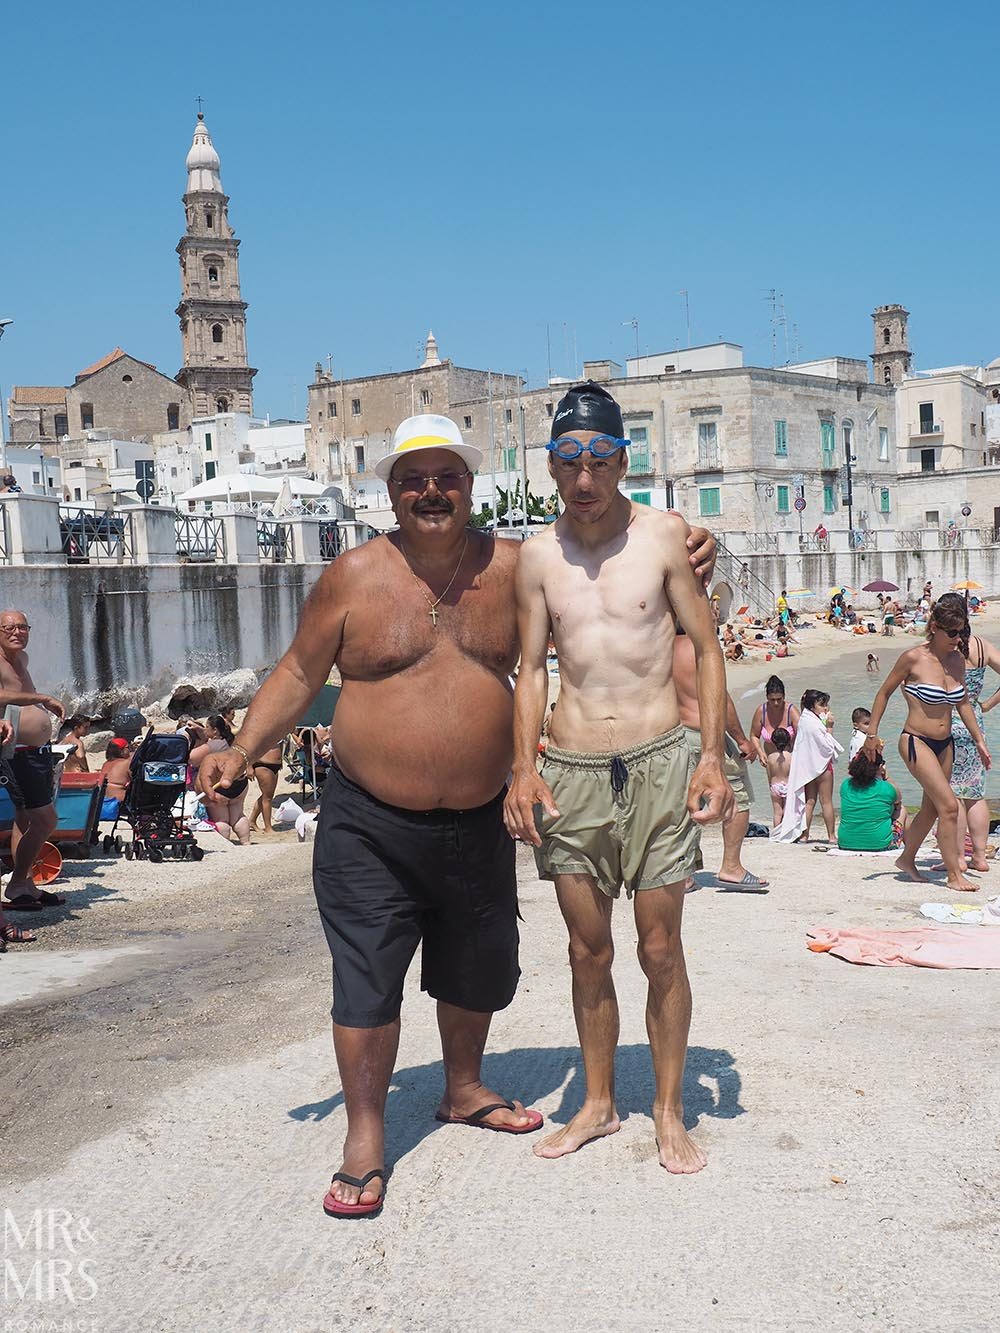 Street photography - how to photograph people - Puglia, Italy - MMR